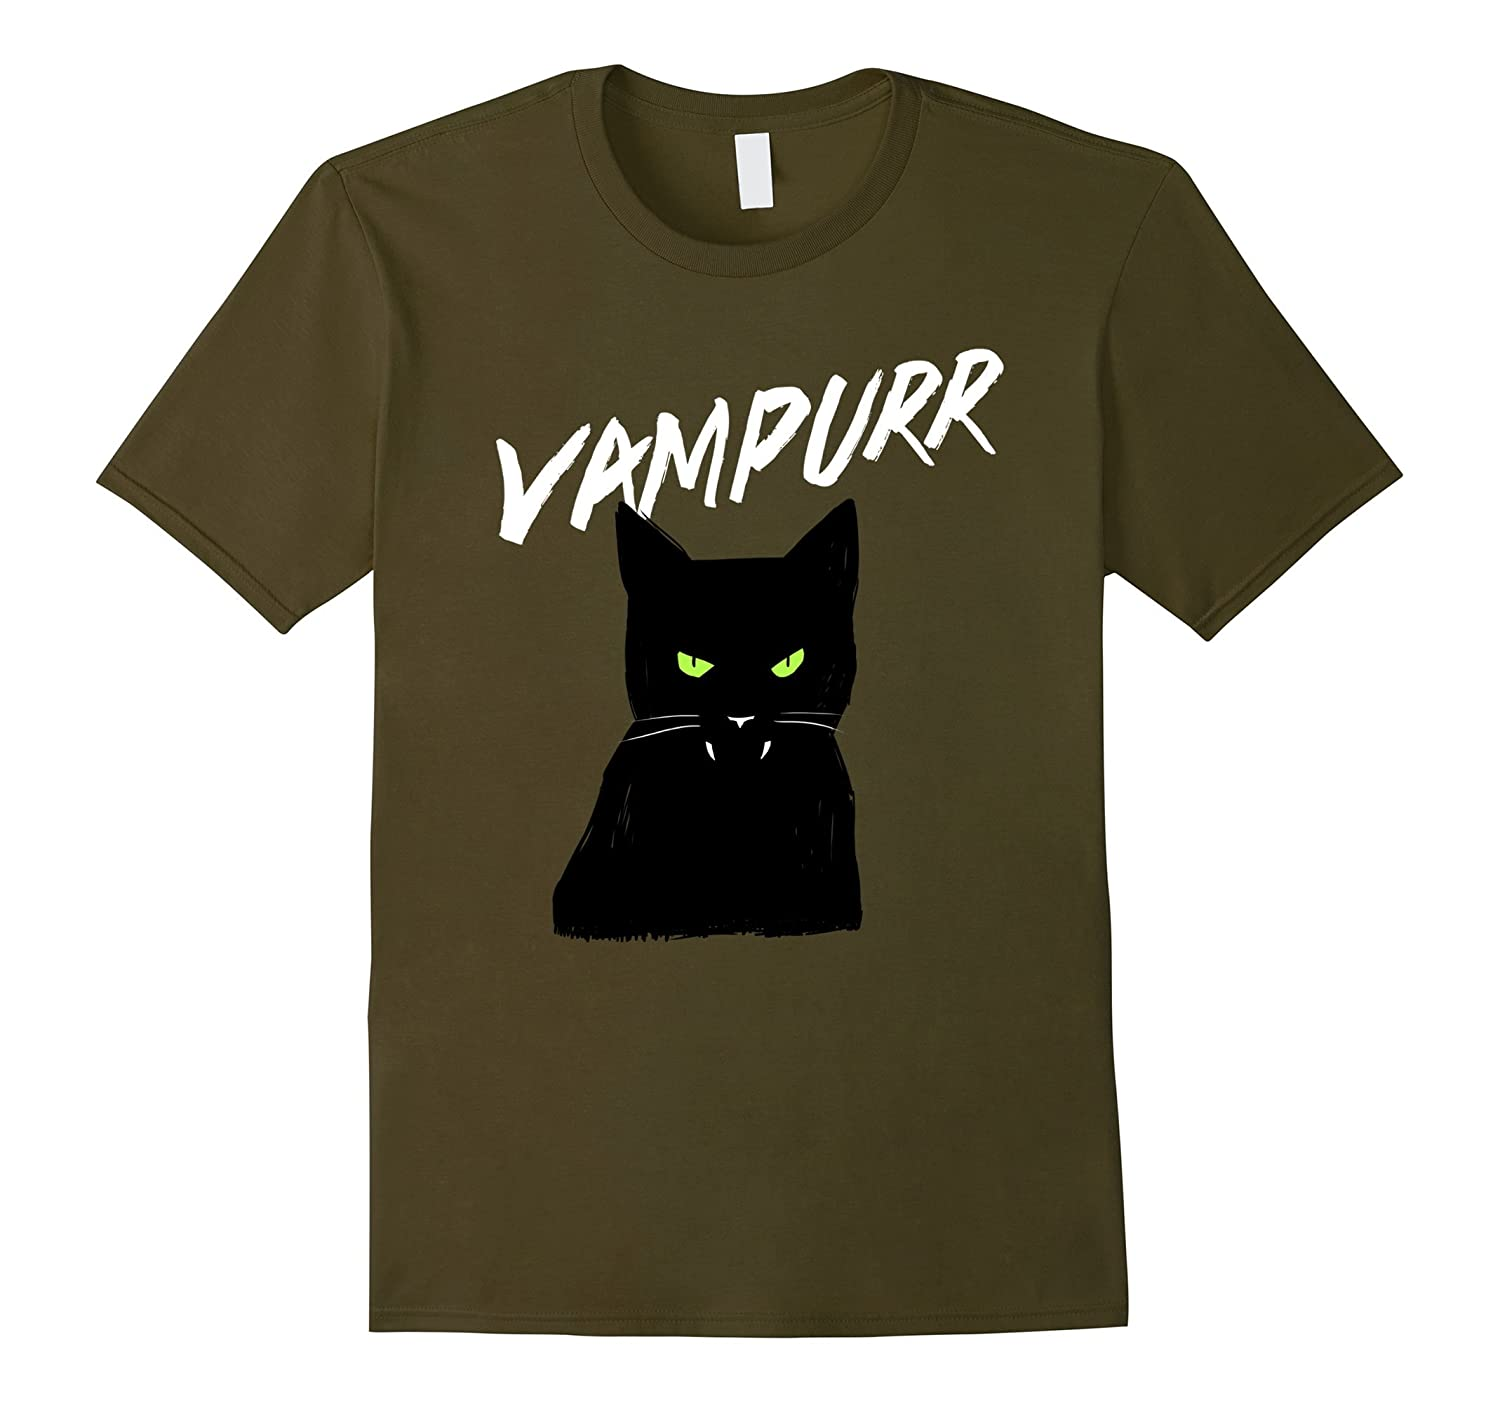 Vampurr Vampire Black Cat T-Shirt Halloween Tee-CL